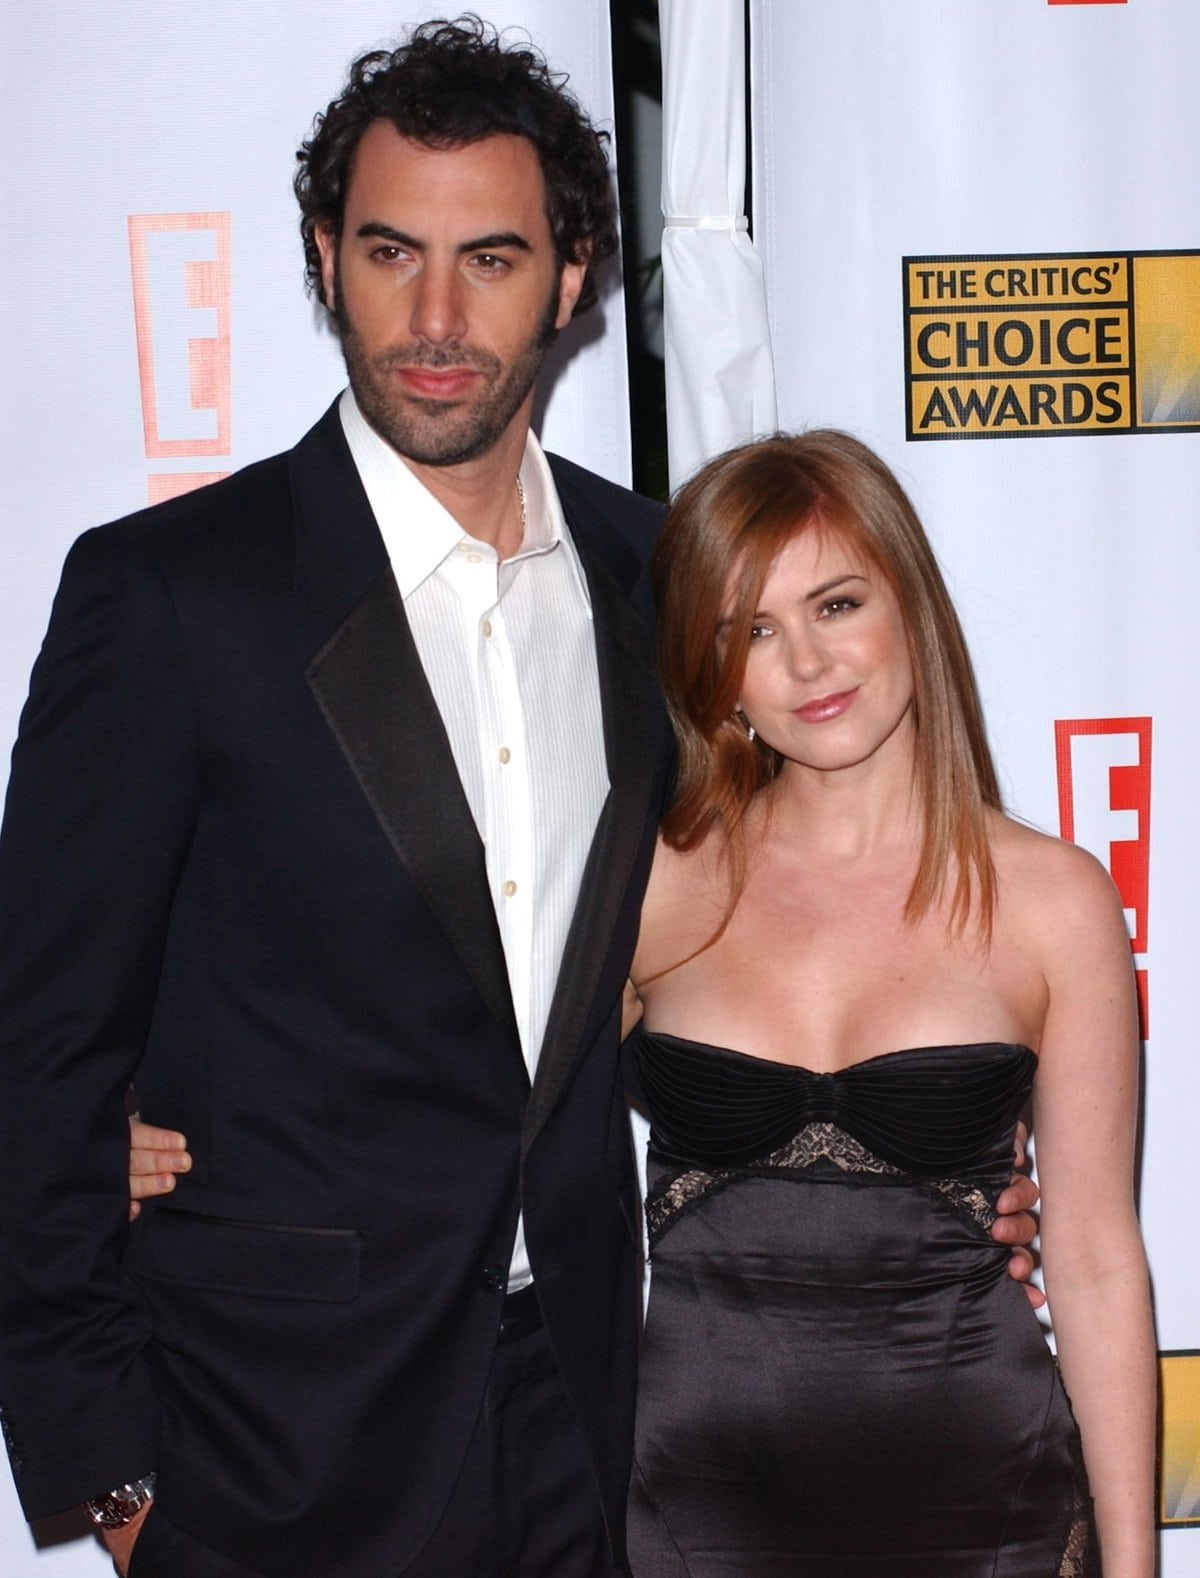 Sacha Baron Cohen got engaged to his much shorter girlfriend Isla Fisher in 2004 and married on 15 March 2010